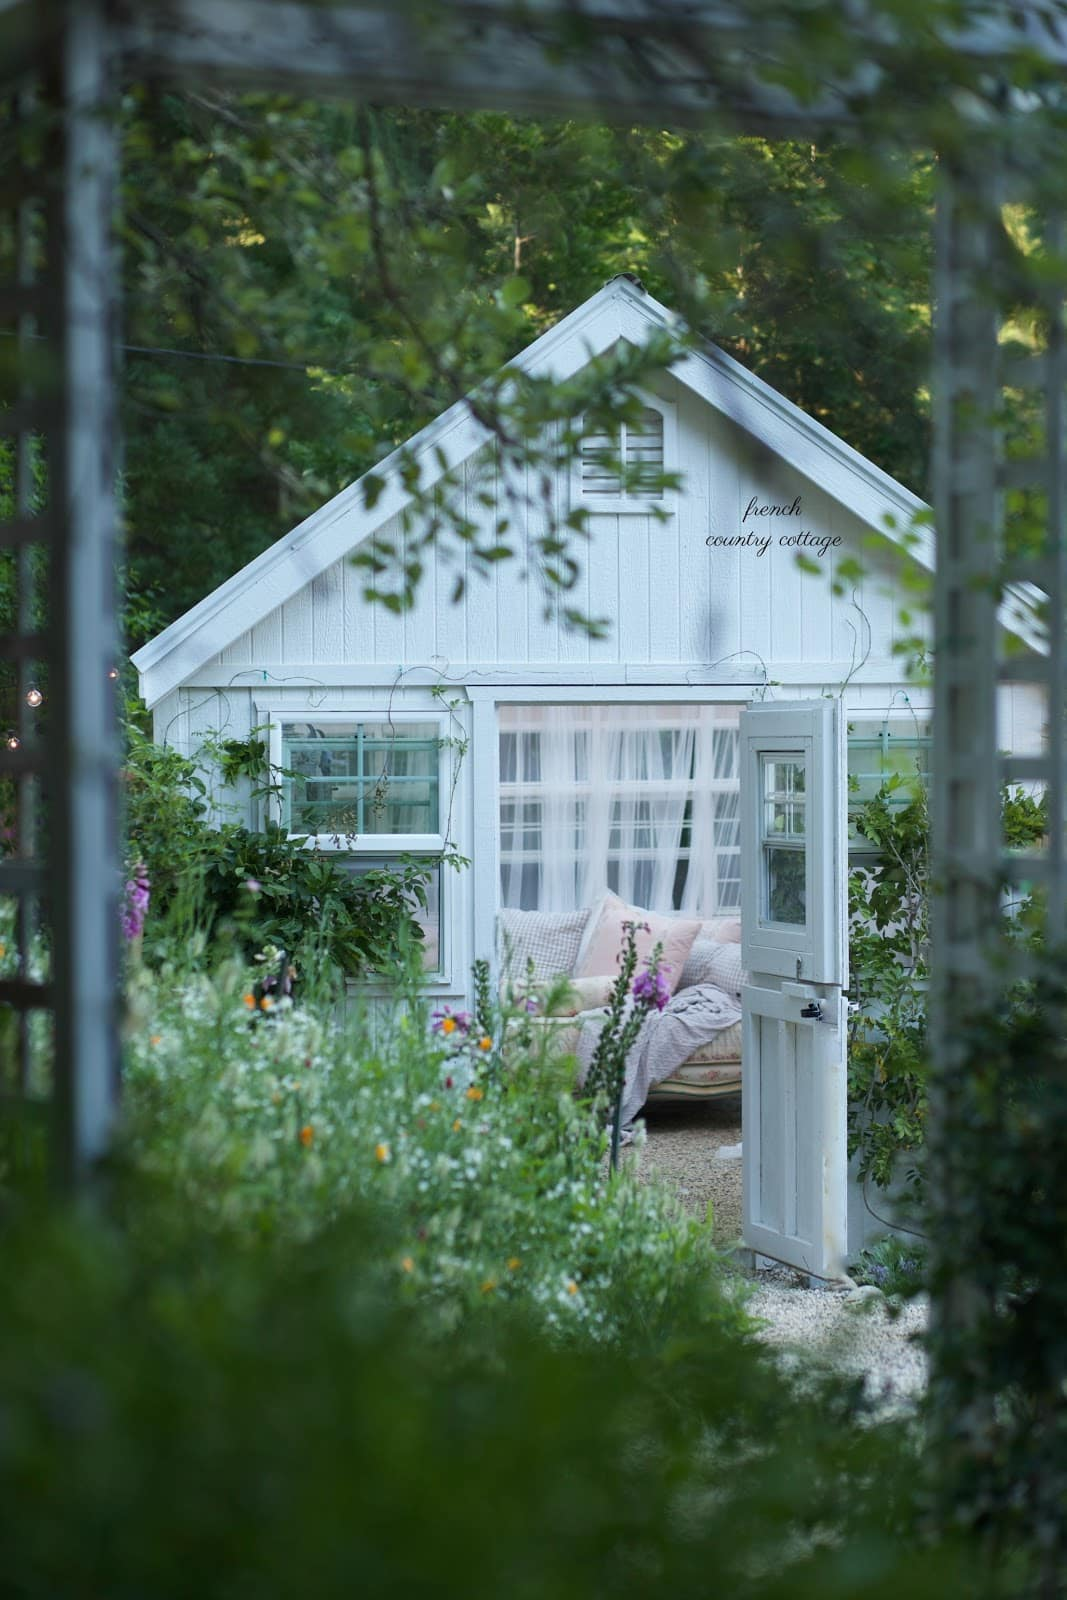 French Country Cottage She Shed through arbor